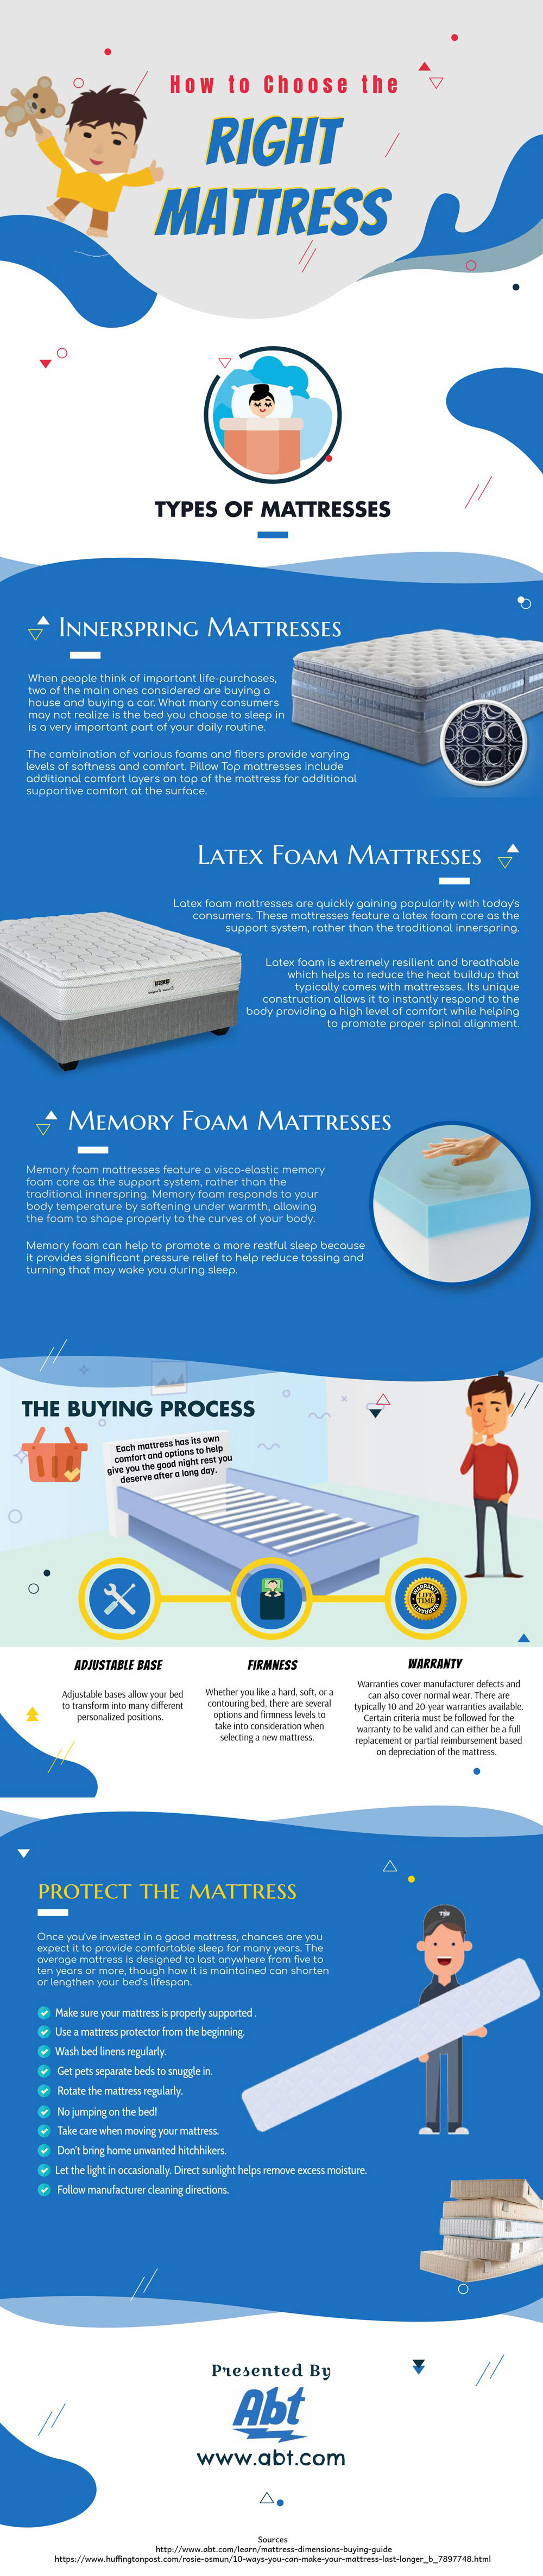 a spring pick mattress best extras choose foam care guide how open mattresses to latex garden size types memory buying the independent indybest firmness pocket house